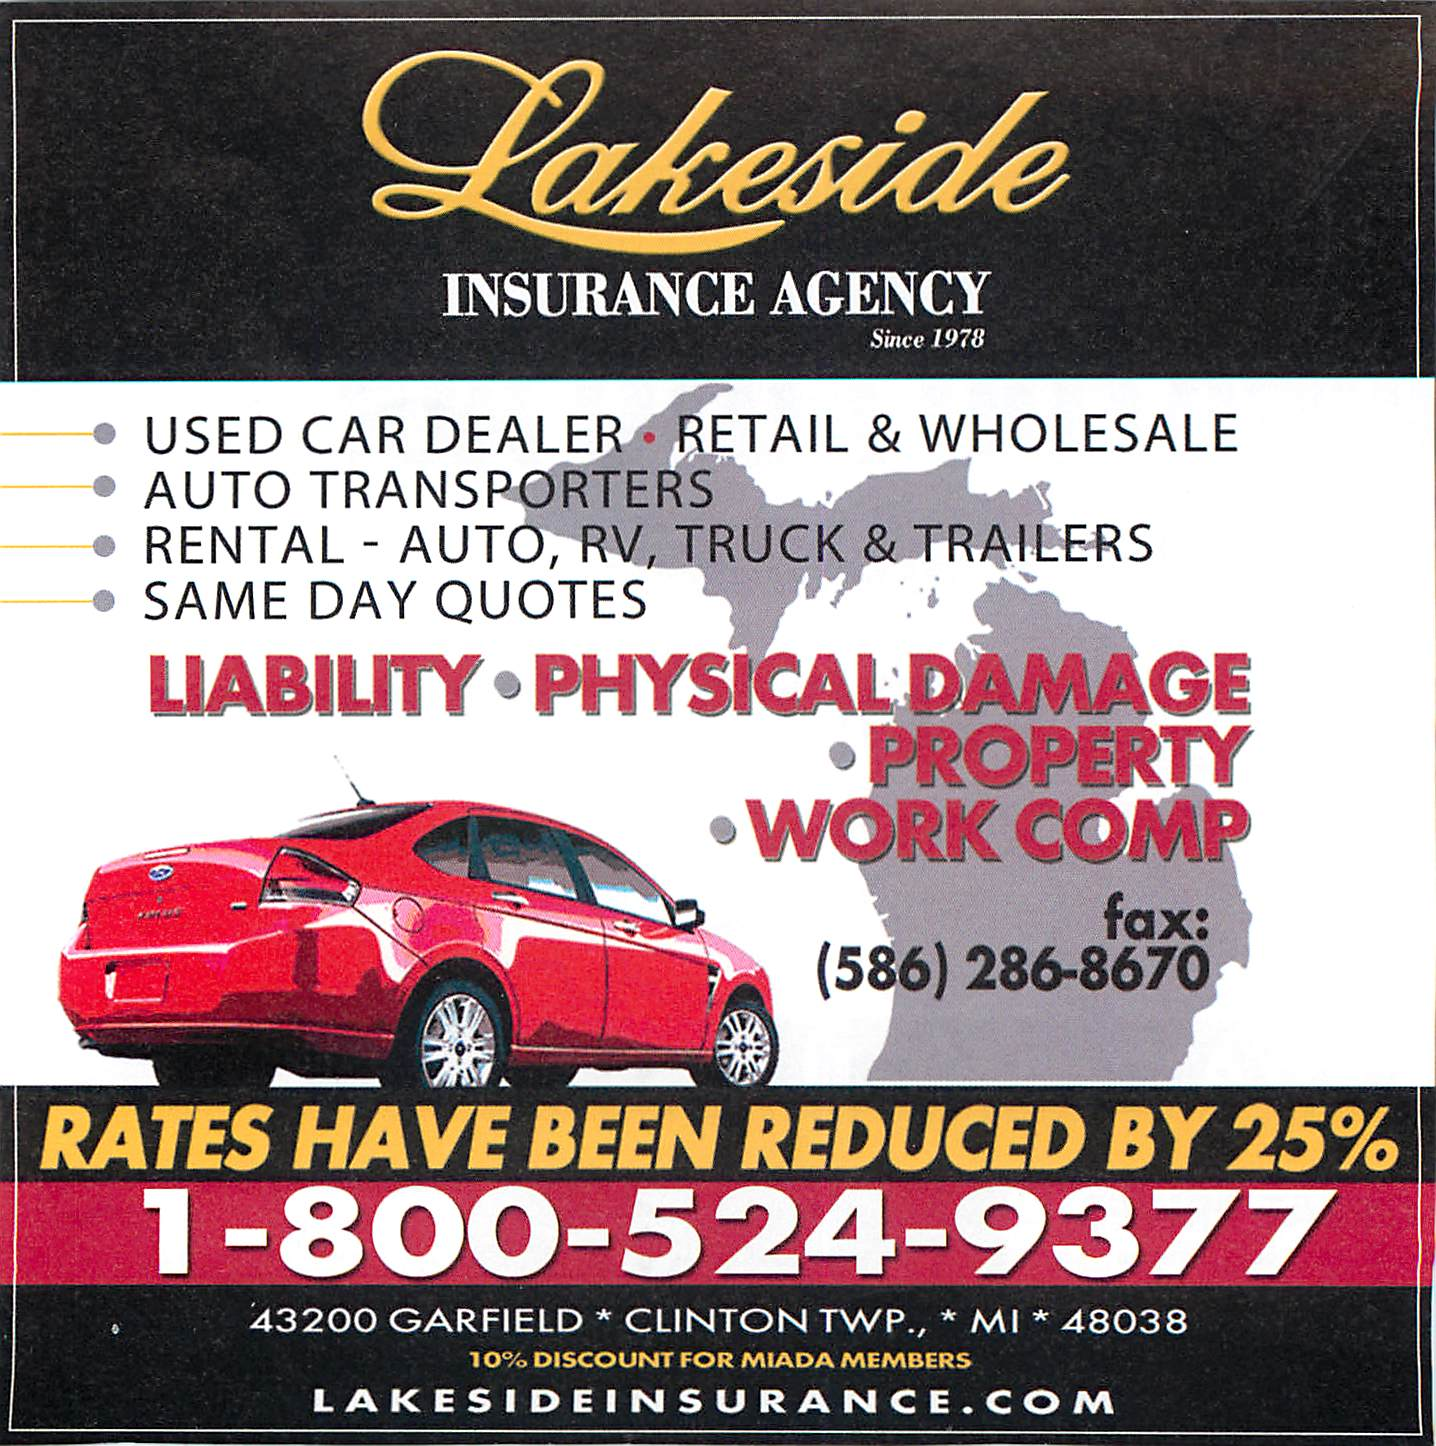 check out lakeside insurances newest add in michigan driveline magazine lakesides used car dealer program is currently exclusive to michigan but will